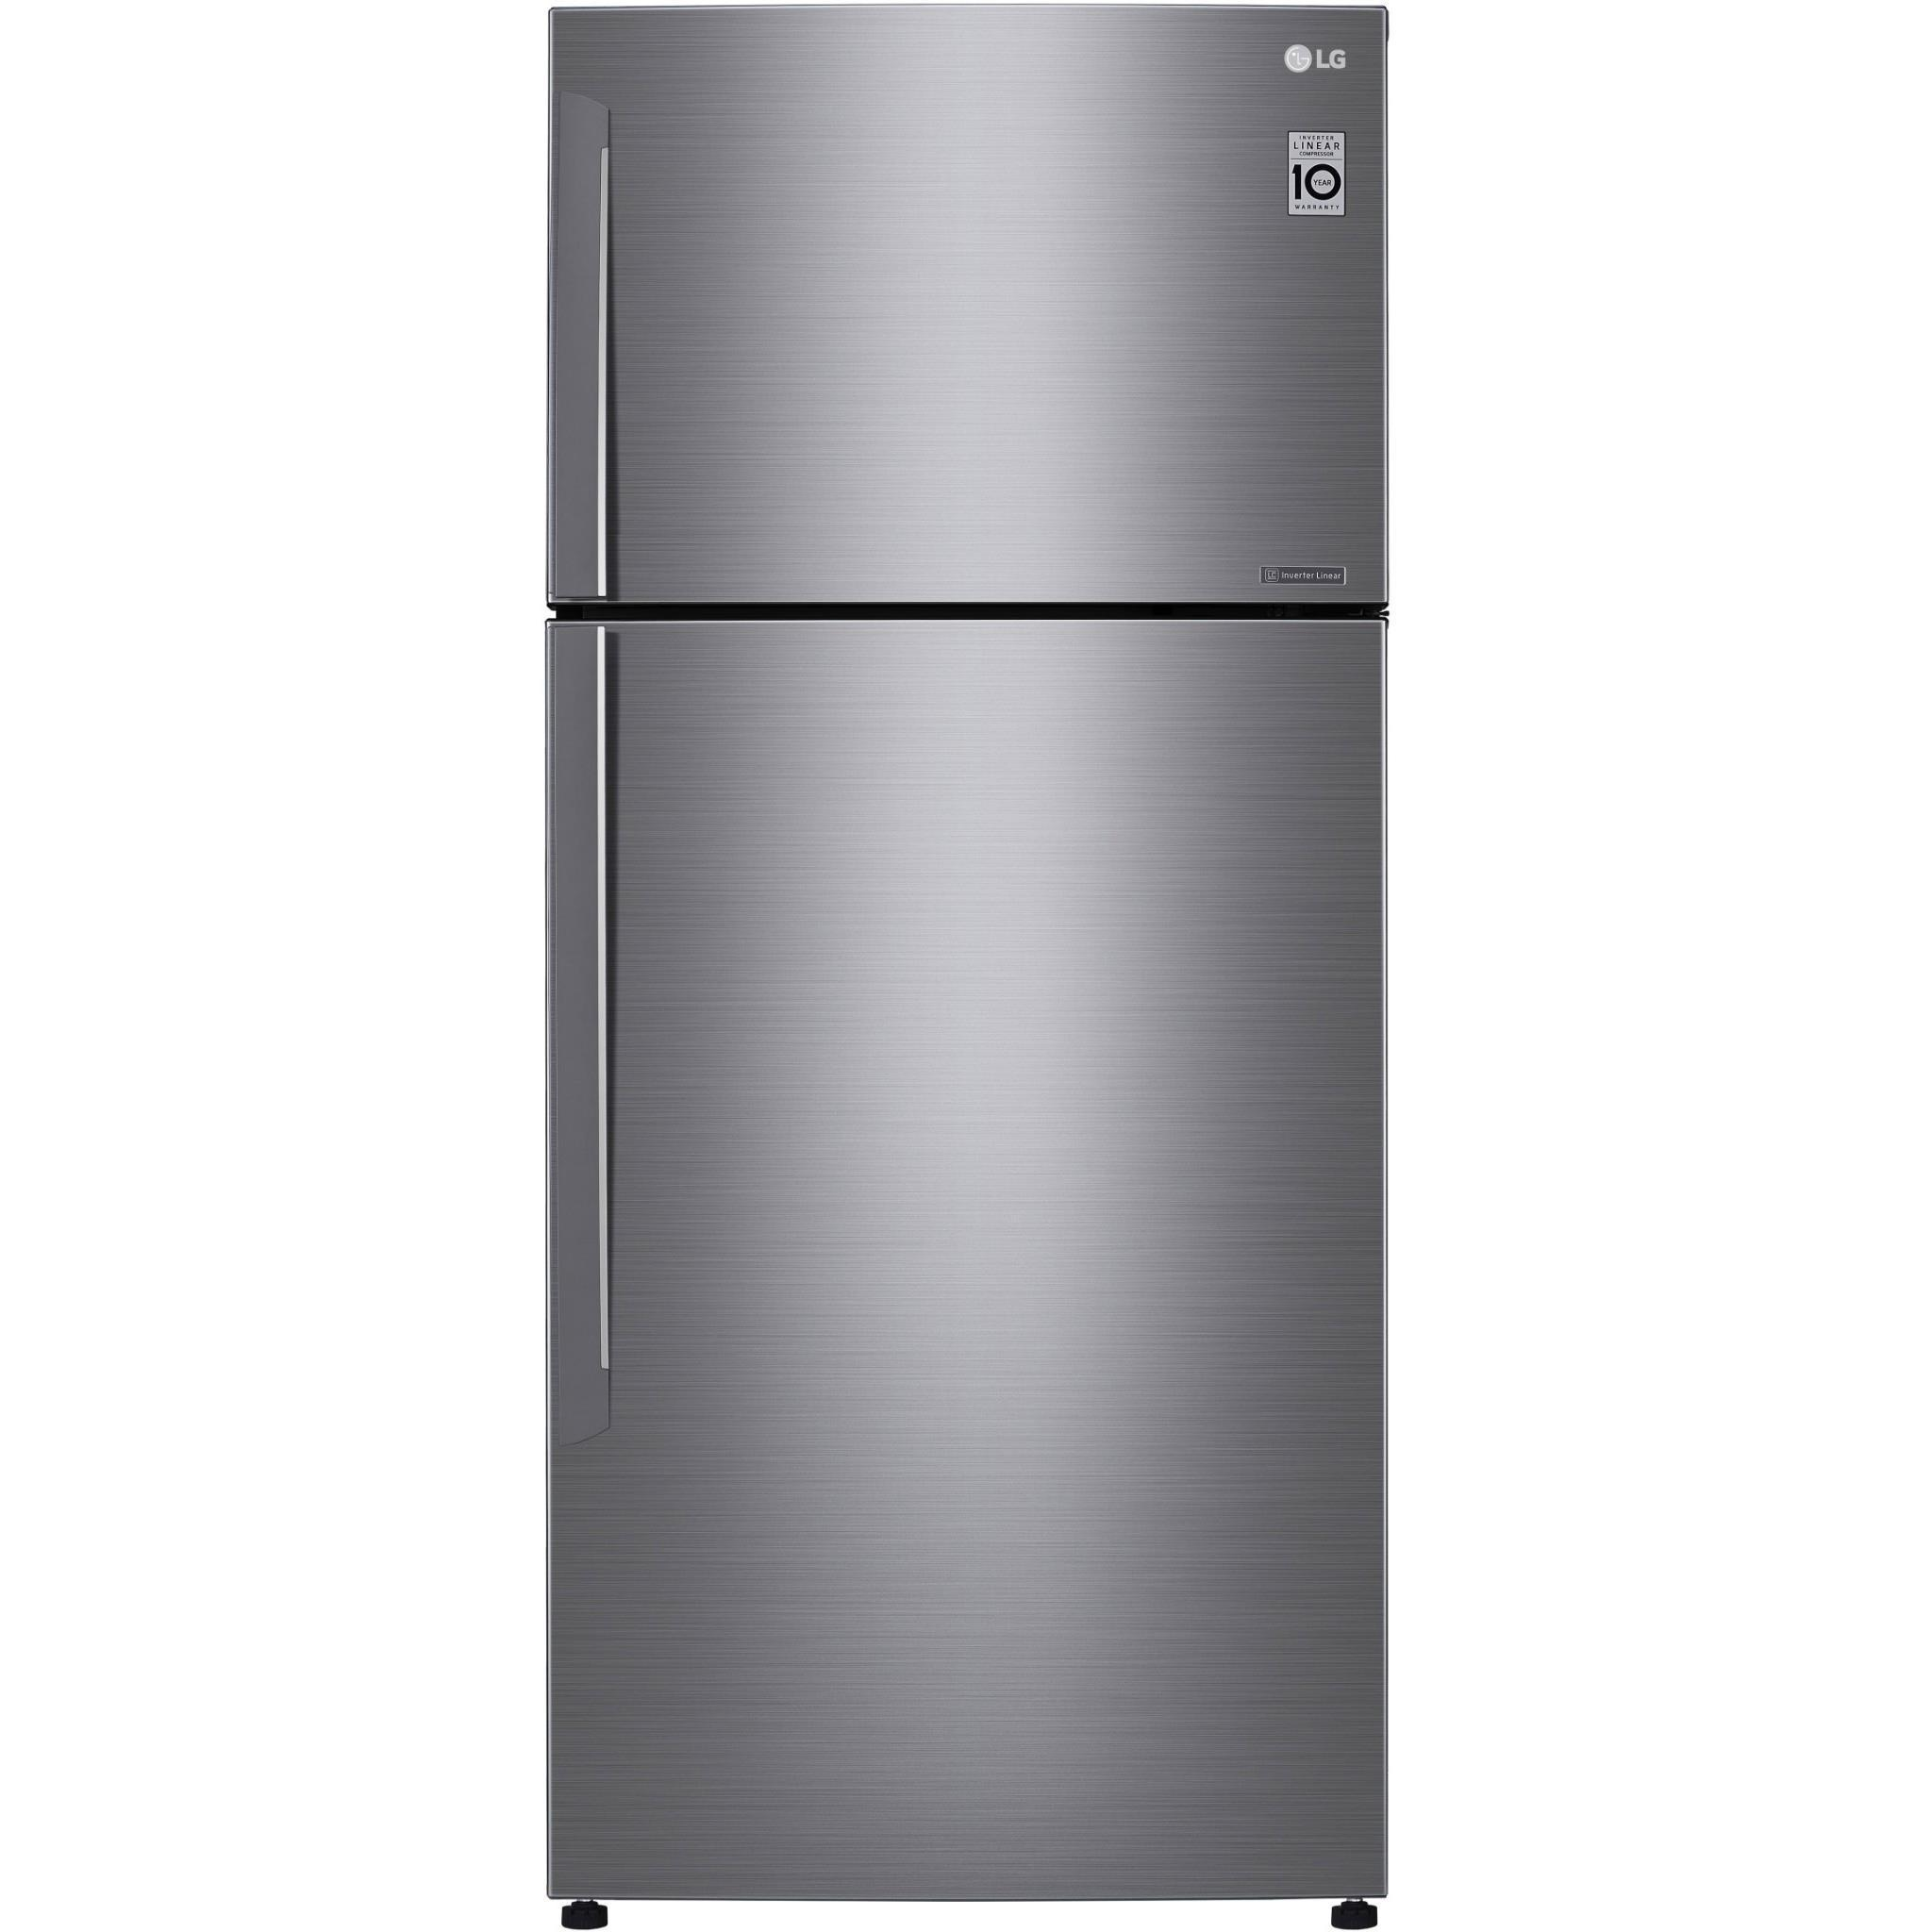 LG GT515SDC 516L Top Mount Fridge (S/Steel)